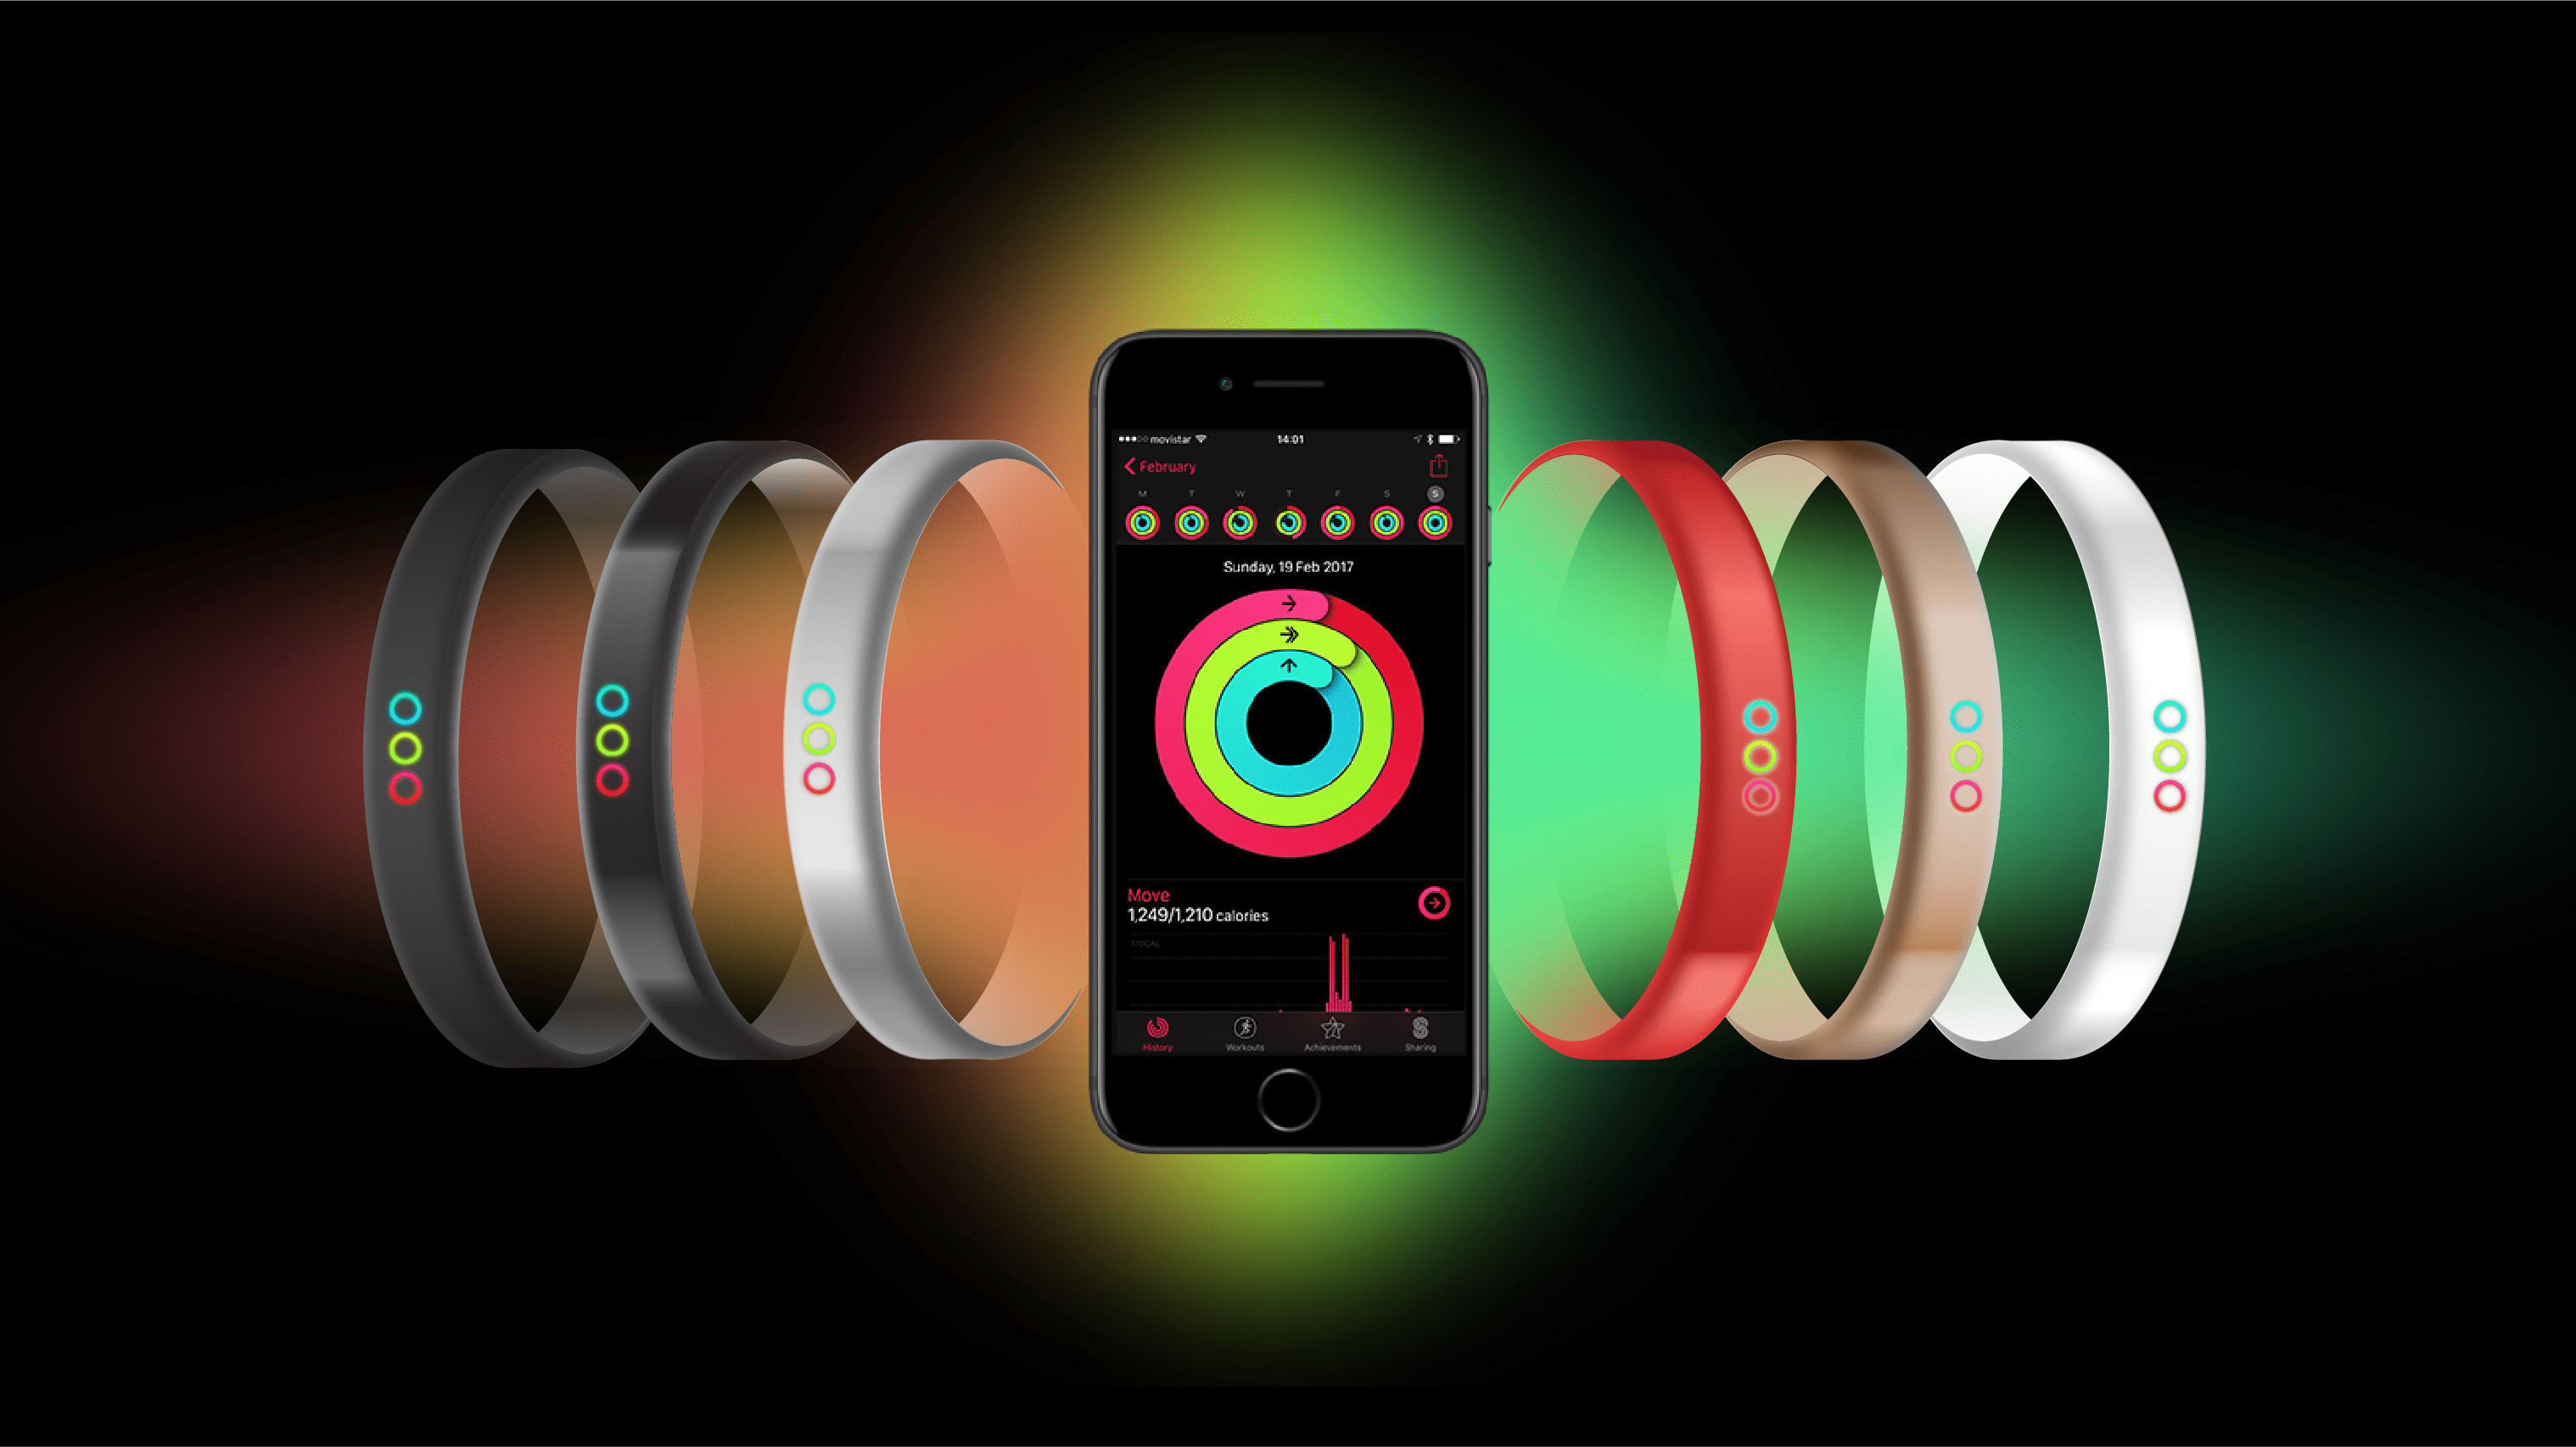 A no-frills Apple fitness tracker could get new users hooked on the Activity app.